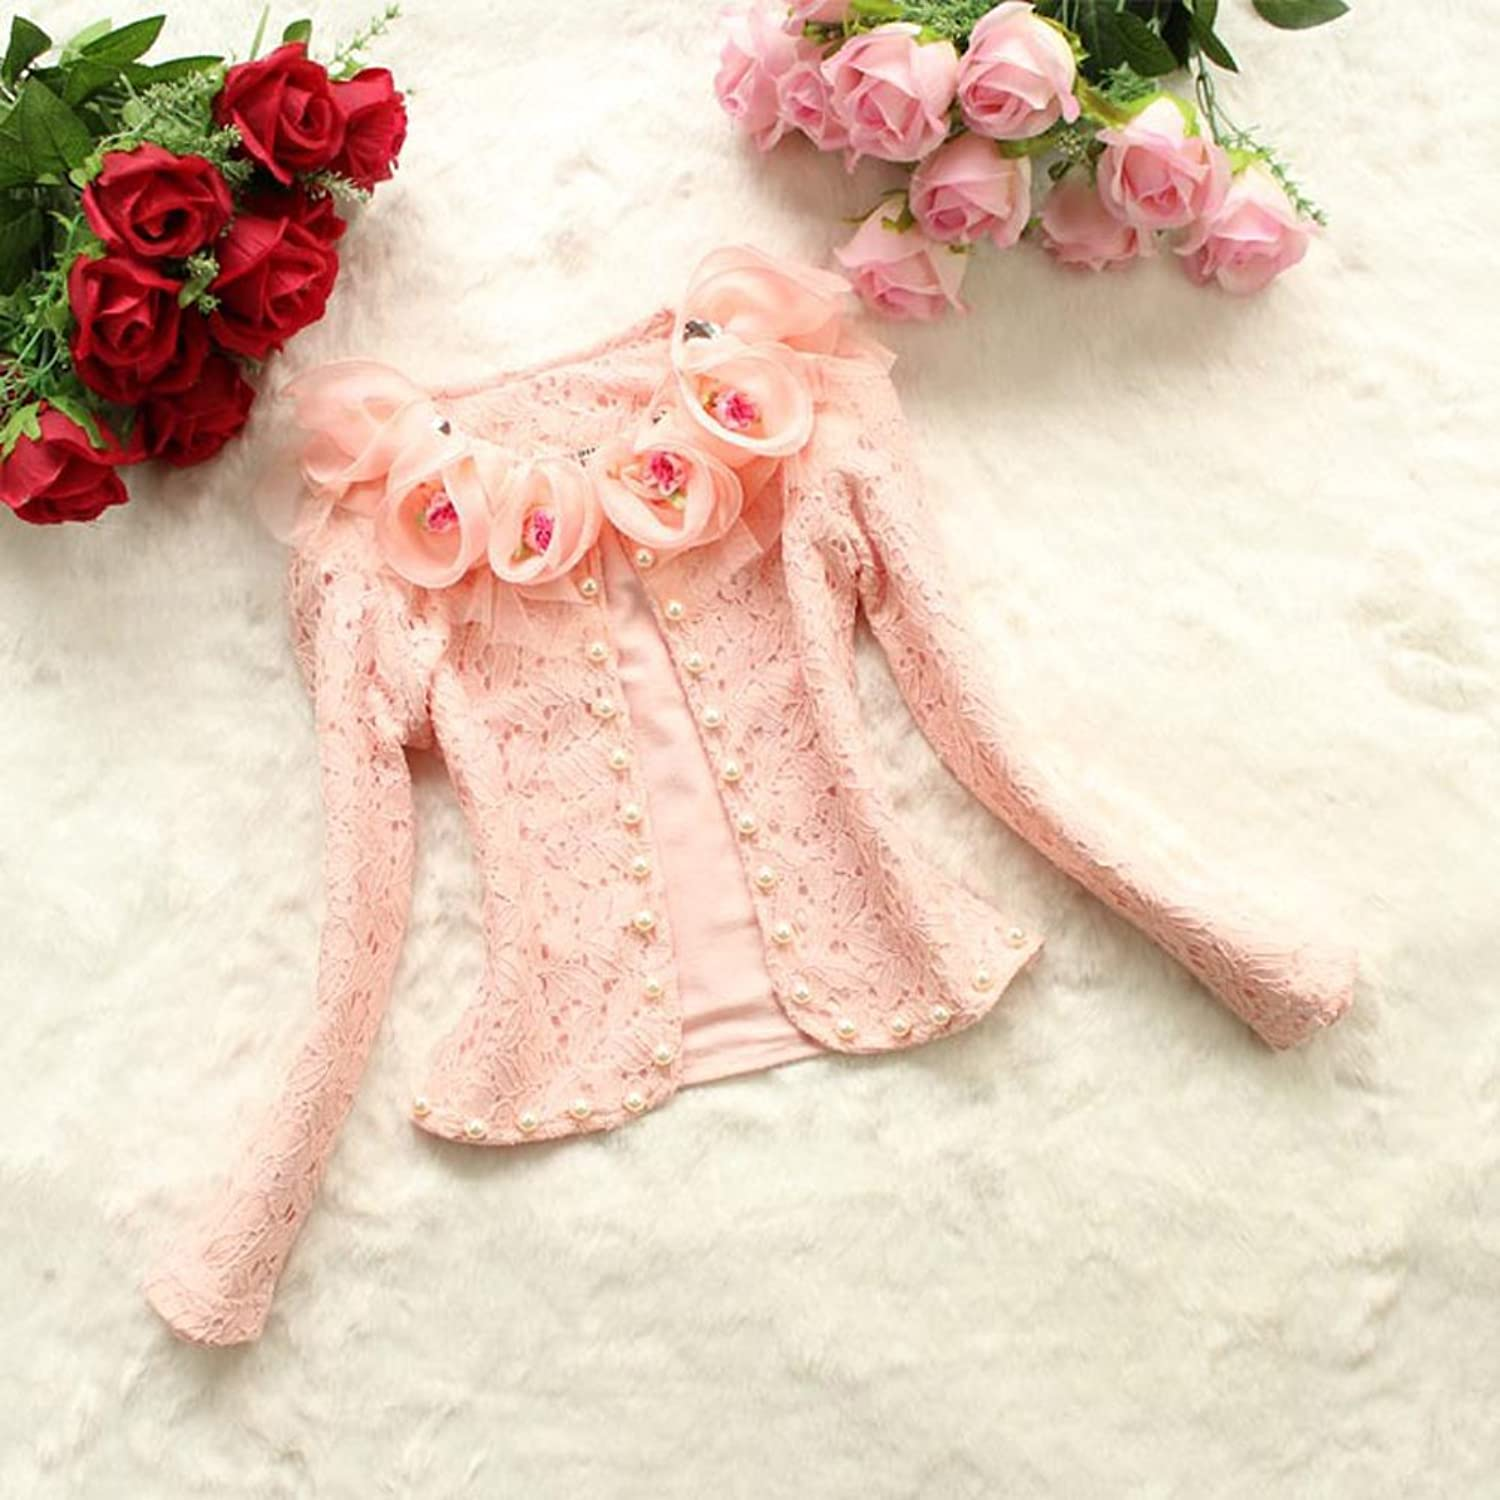 Dolpind Baby Girls 3 Piece Cardigan Clothes Kids TuTu Dress Outfit Clothing